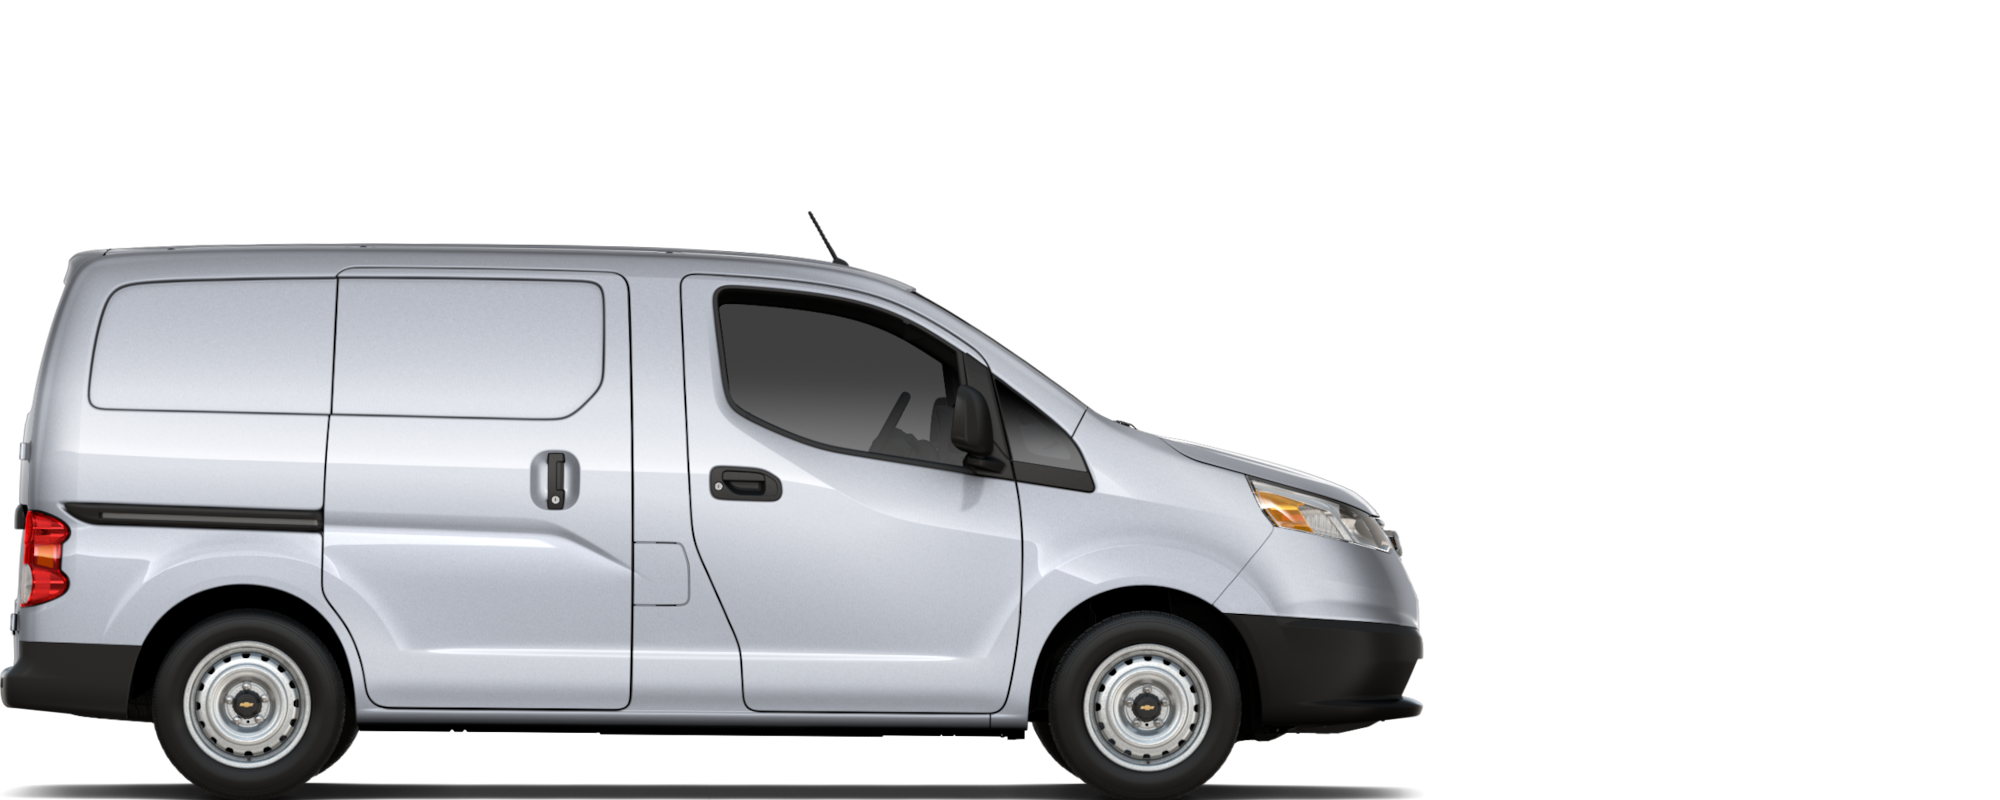 2017 chevrolet city express k0u?imwidth=1500 2017 city express small cargo van chevrolet Aftermarket Radio Wiring Harness at bakdesigns.co